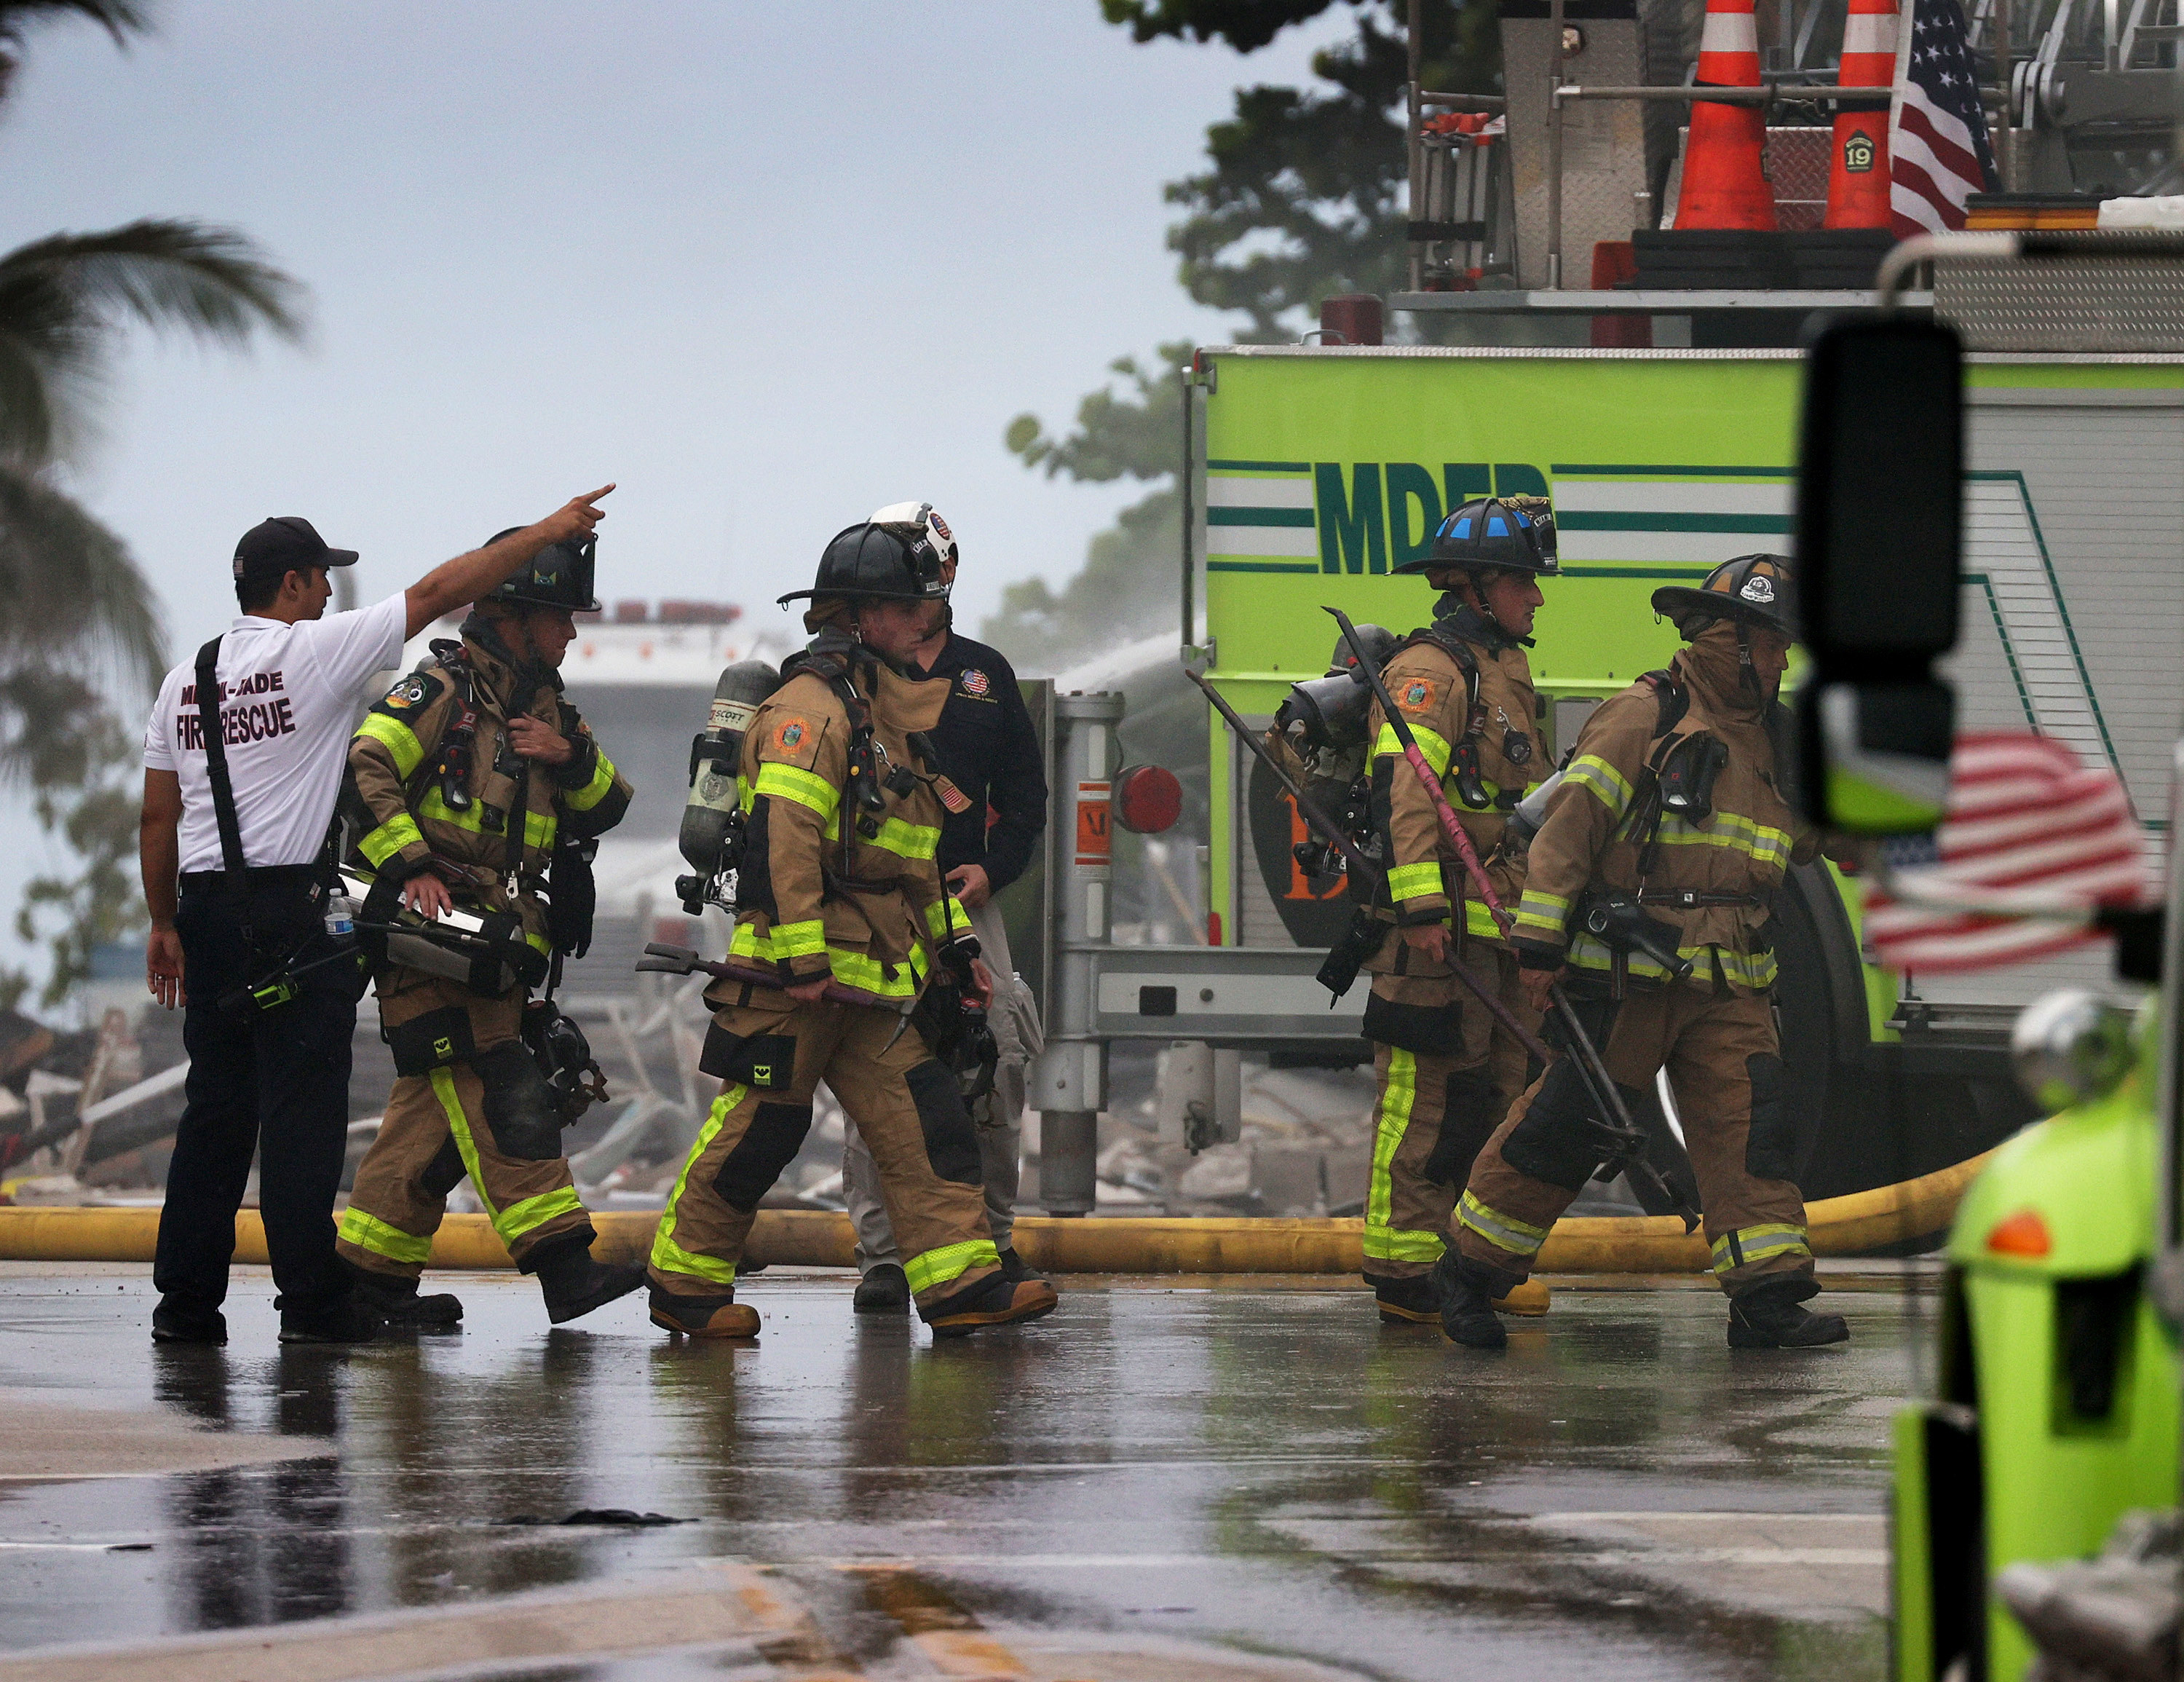 Firefighters walk on wet ground toward the partially collapsed building as a rescue worker points